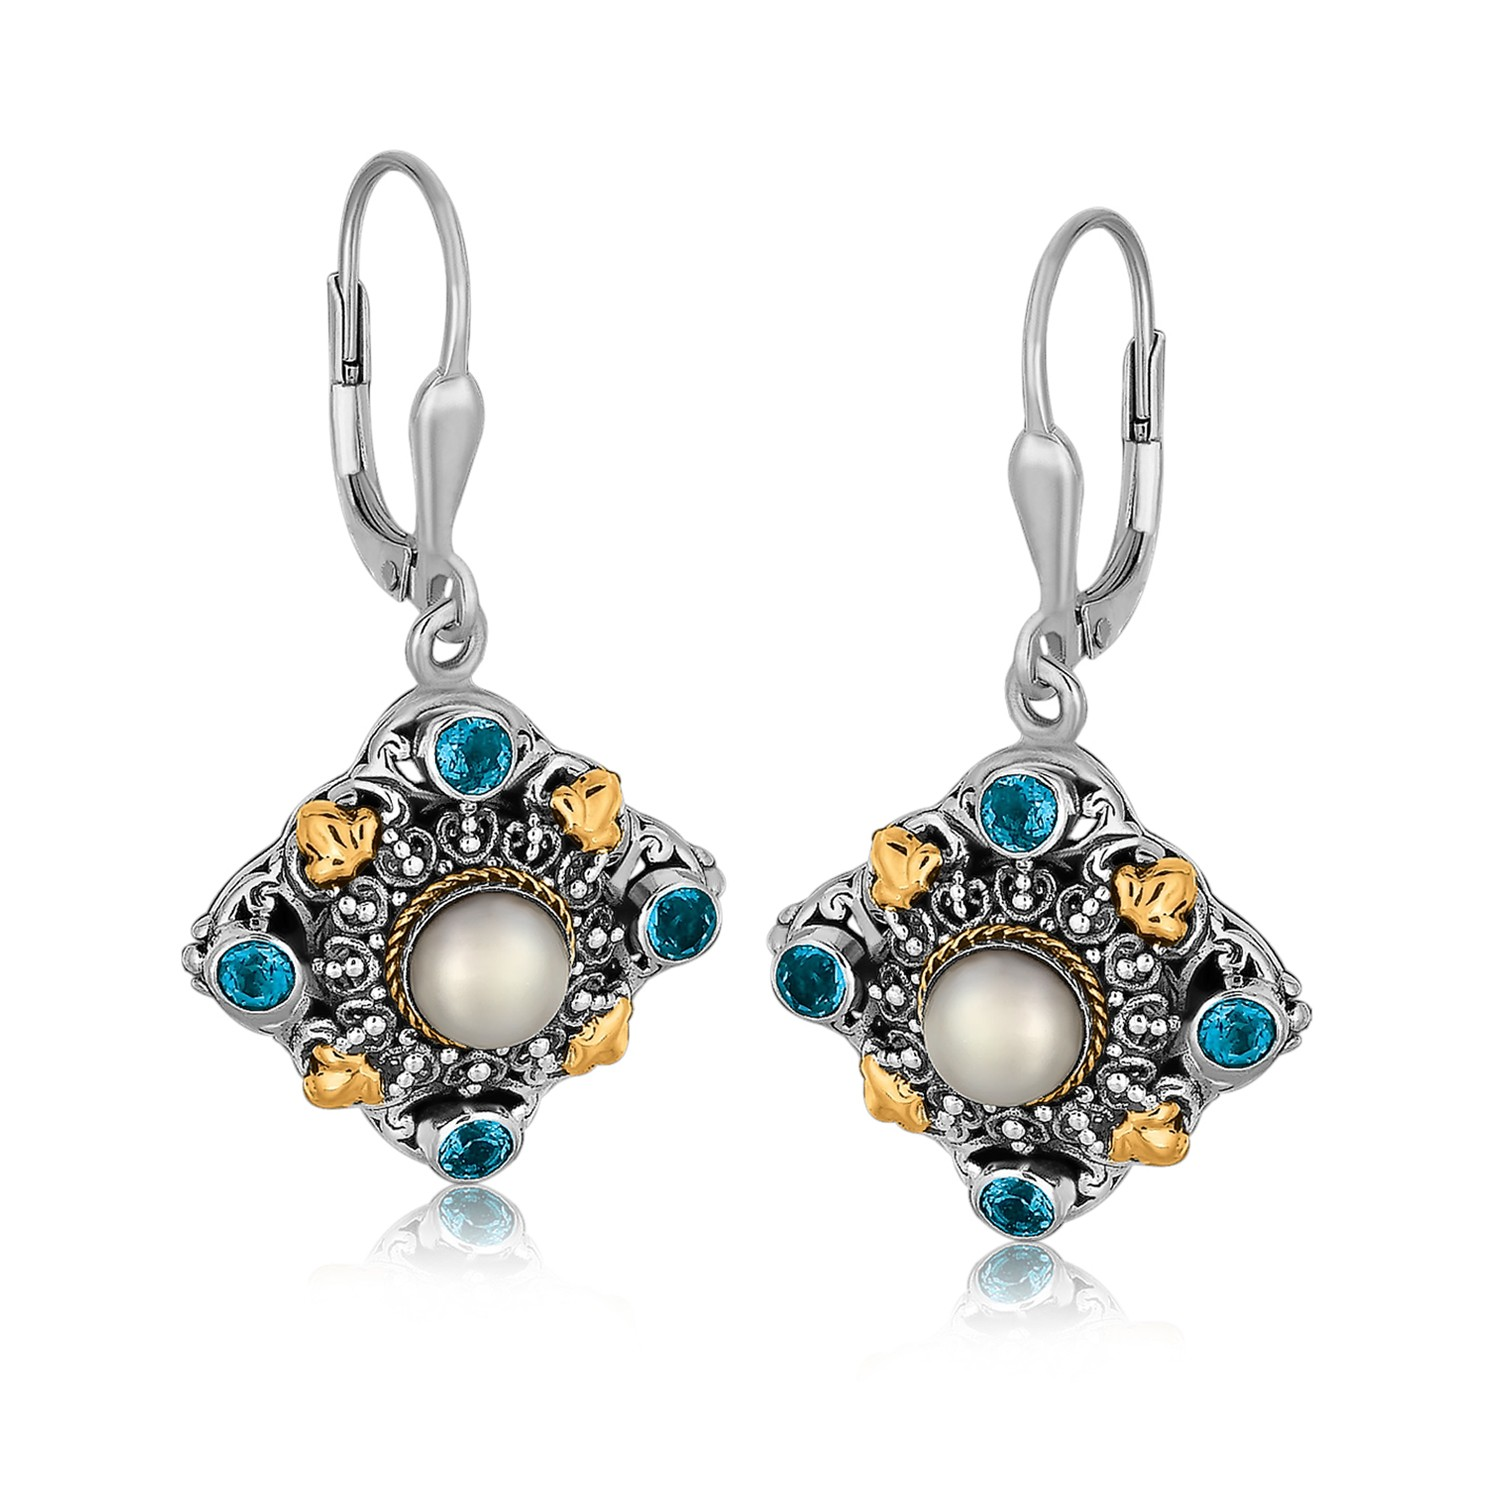 Myriam's Boutique 18K Yellow Gold and Sterling Silver Earrings with Pearl and Blue Topaz at Sears.com